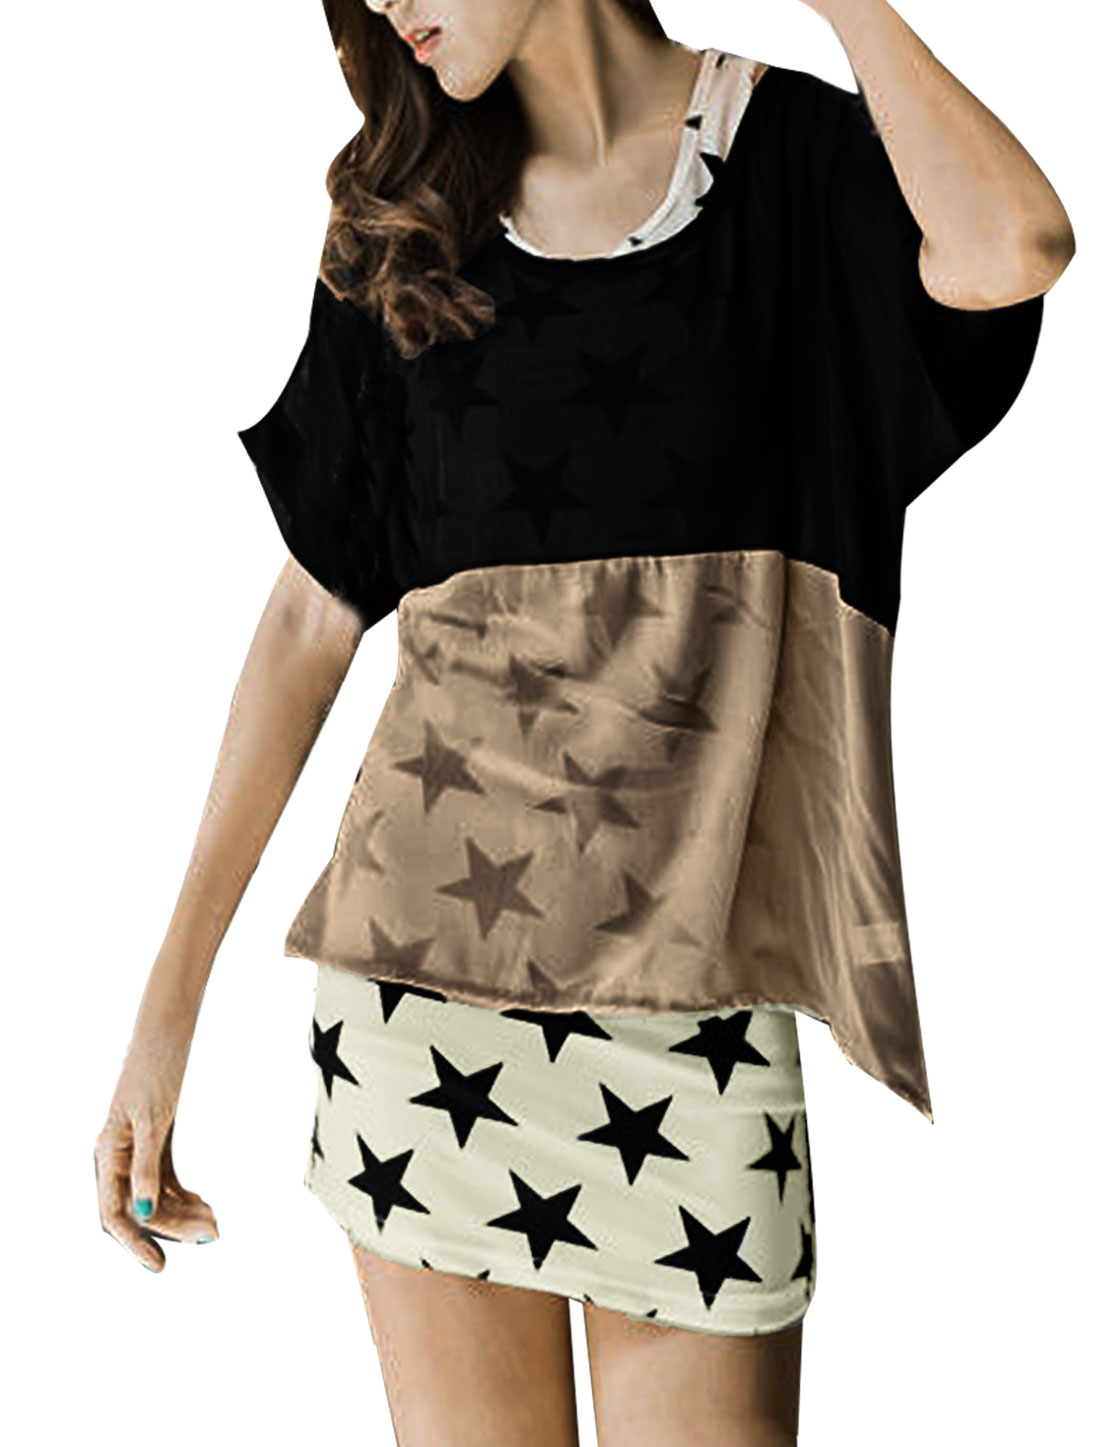 Ladies Black Khaki Scoop Neck Loose Chiffon Shirt w White Black Stars Prints Tank Top XS